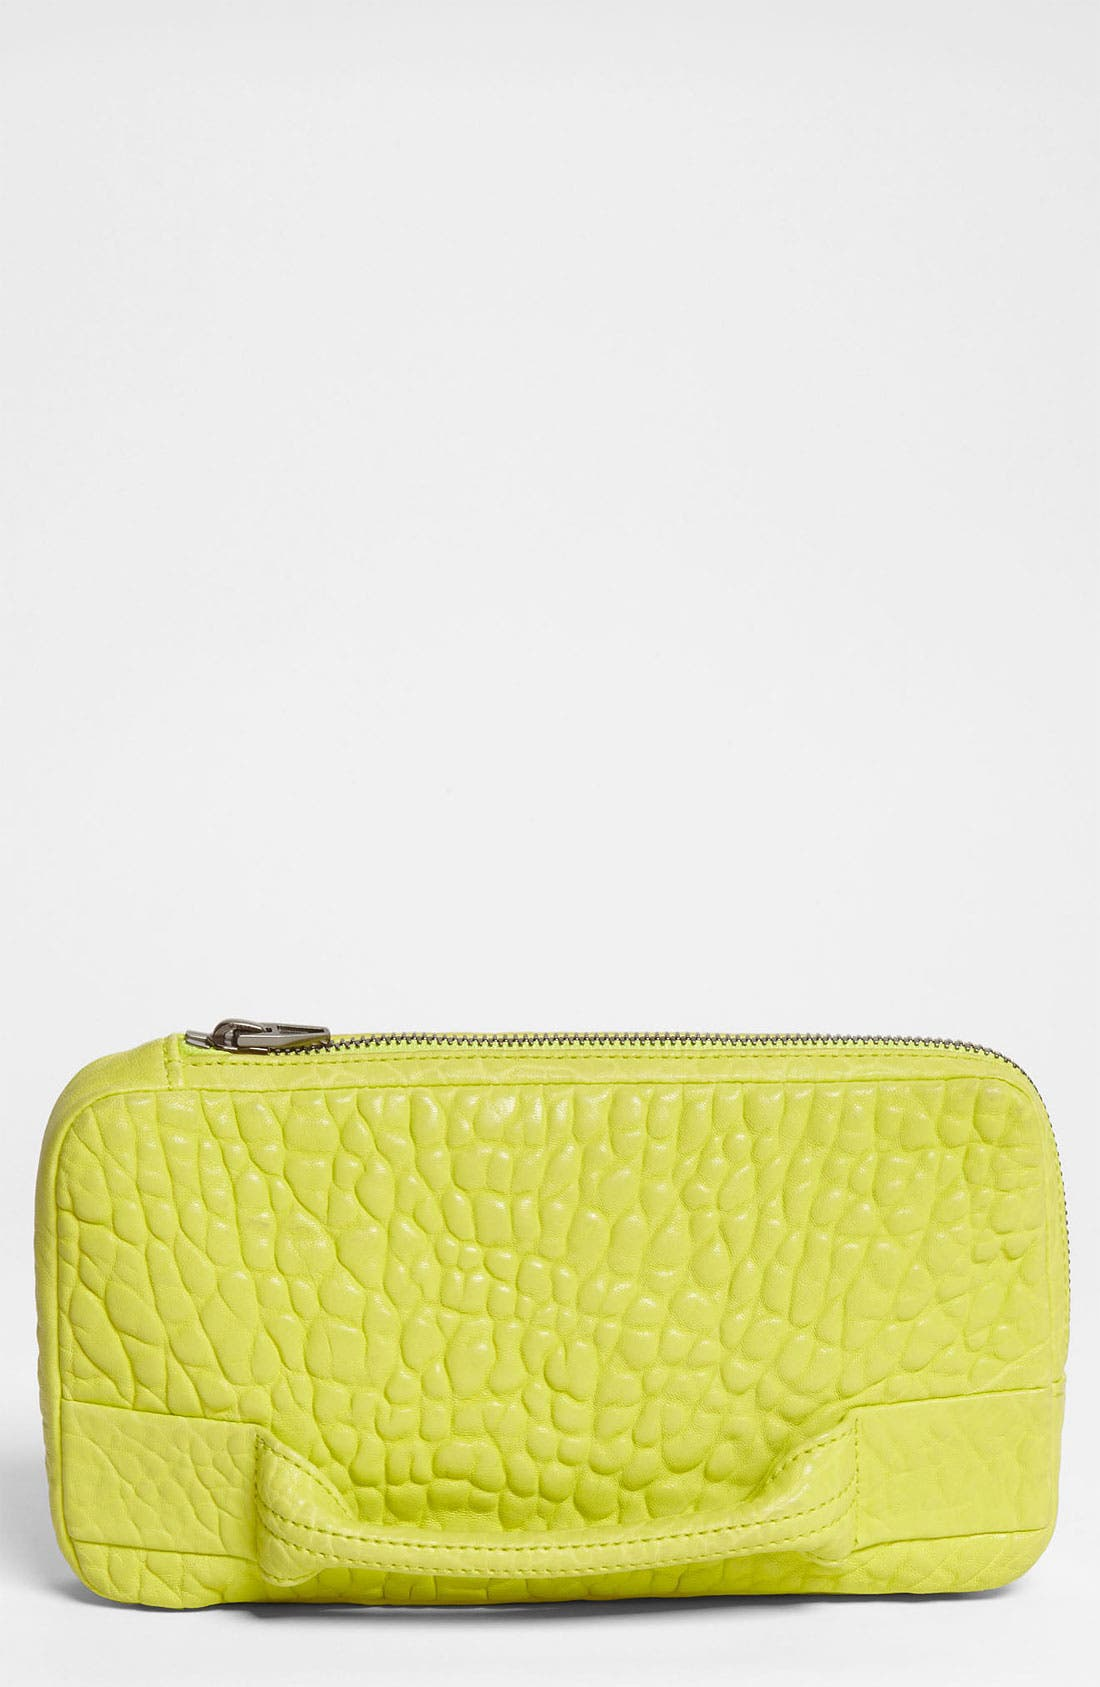 Alternate Image 1 Selected - Alexander Wang 'Dumbo' Leather Clutch